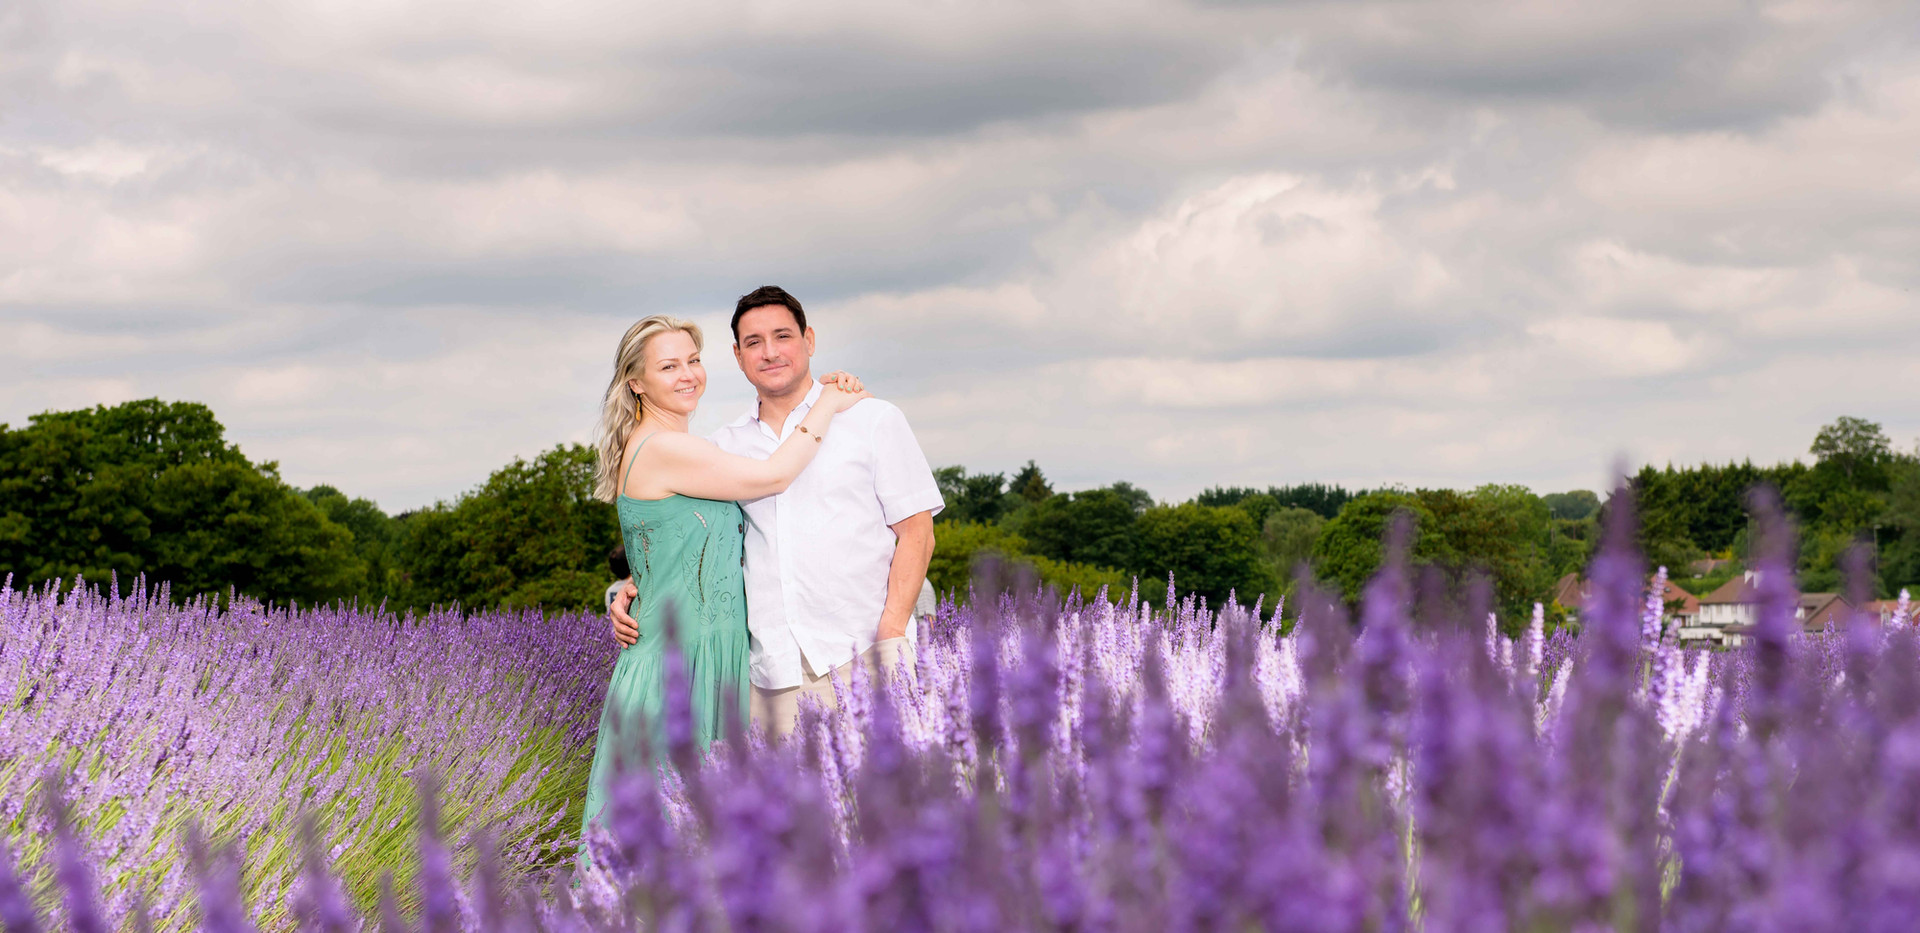 Couple In The Lavender Fields